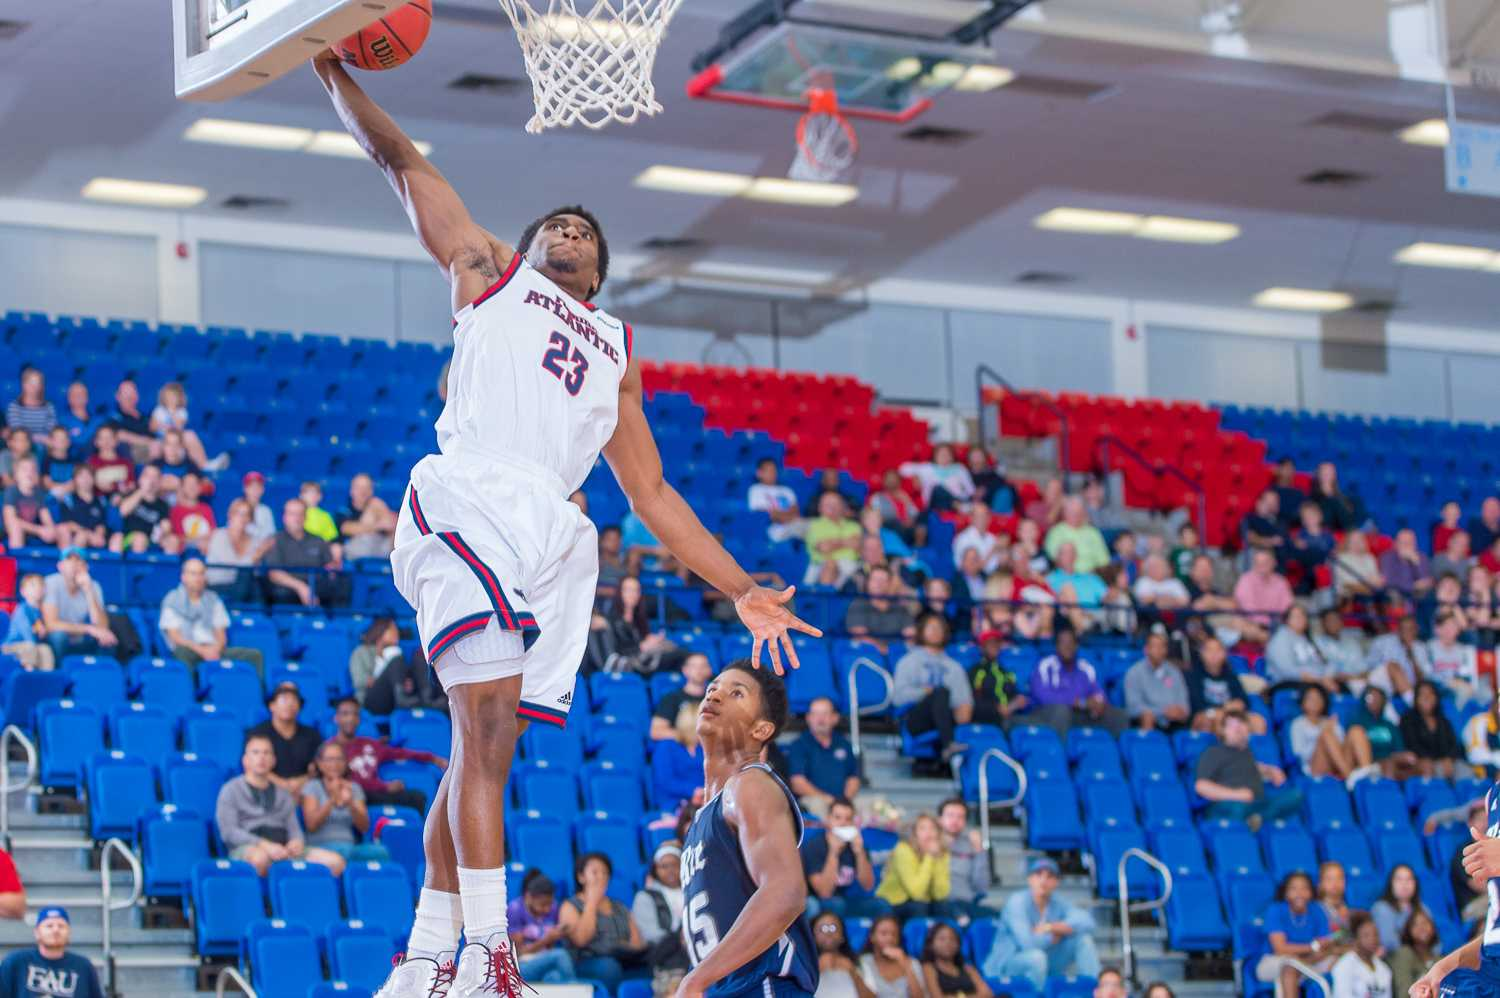 Poole (23) throws down a successful one-handed dunk in the first half of play.  Poole was FAU's highest scorer with 22 points on the night.